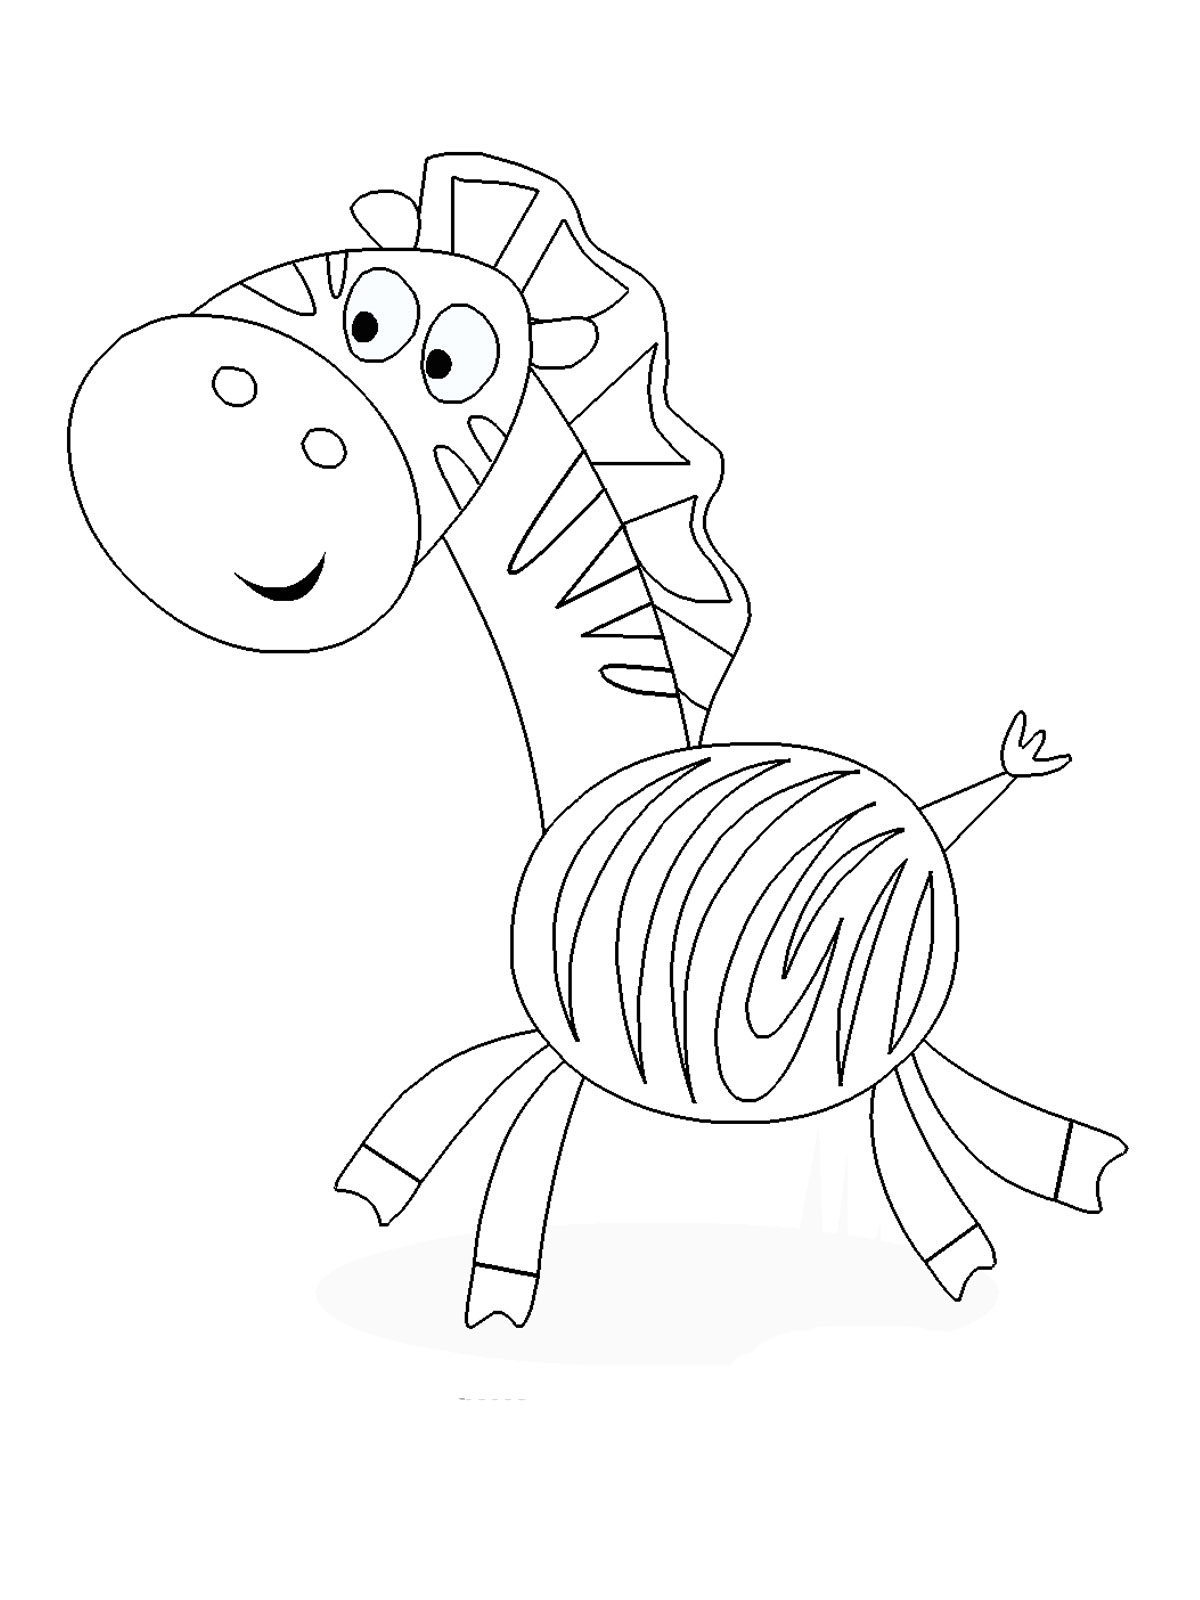 q coloring pages for kids - photo #37